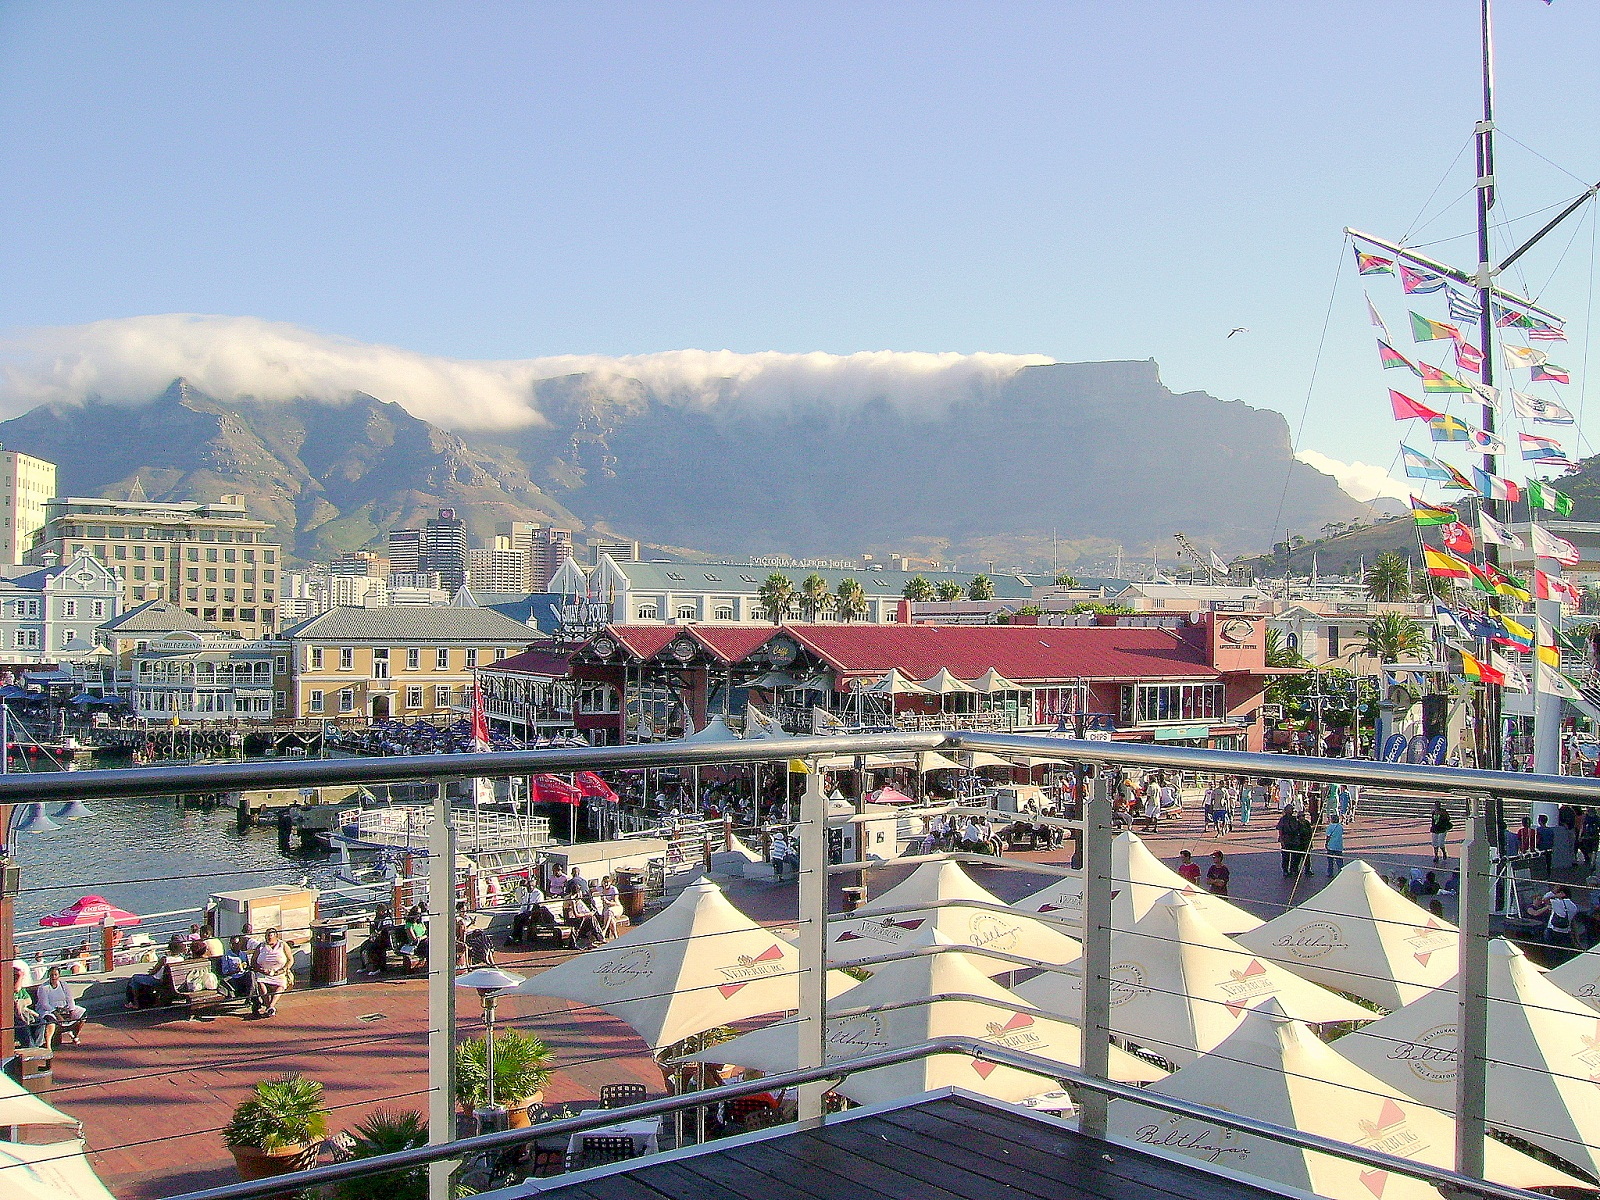 Cape Town, South Africa, Victoria and Alfred Waterfront harbor overview